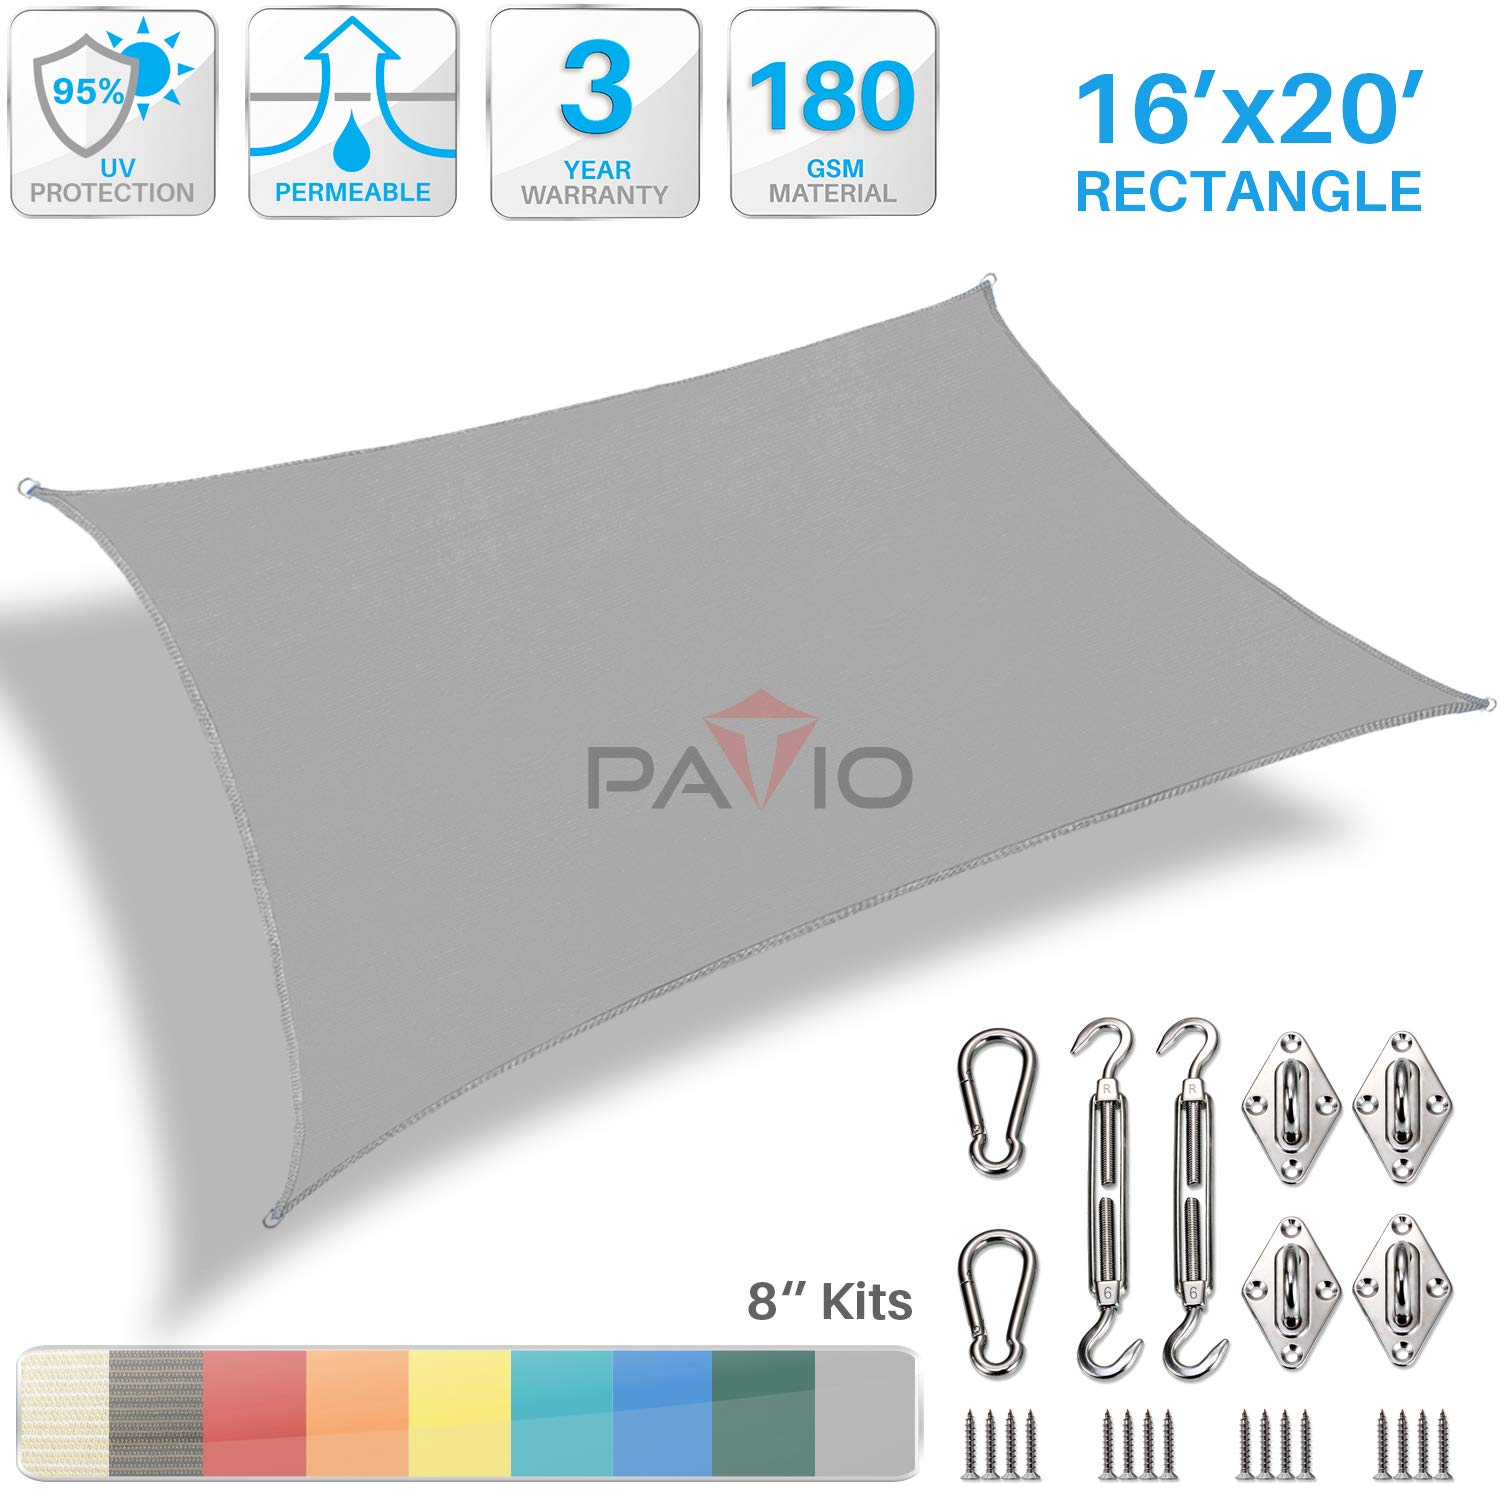 Patio Paradise 16' x 20' Sun Shade Sail with 8 inch Hardware Kit, Light Grey Rectangle Canopy Durable Shade Fabric Outdoor UV Shelter Cover - 3 Year Warranty - Custom